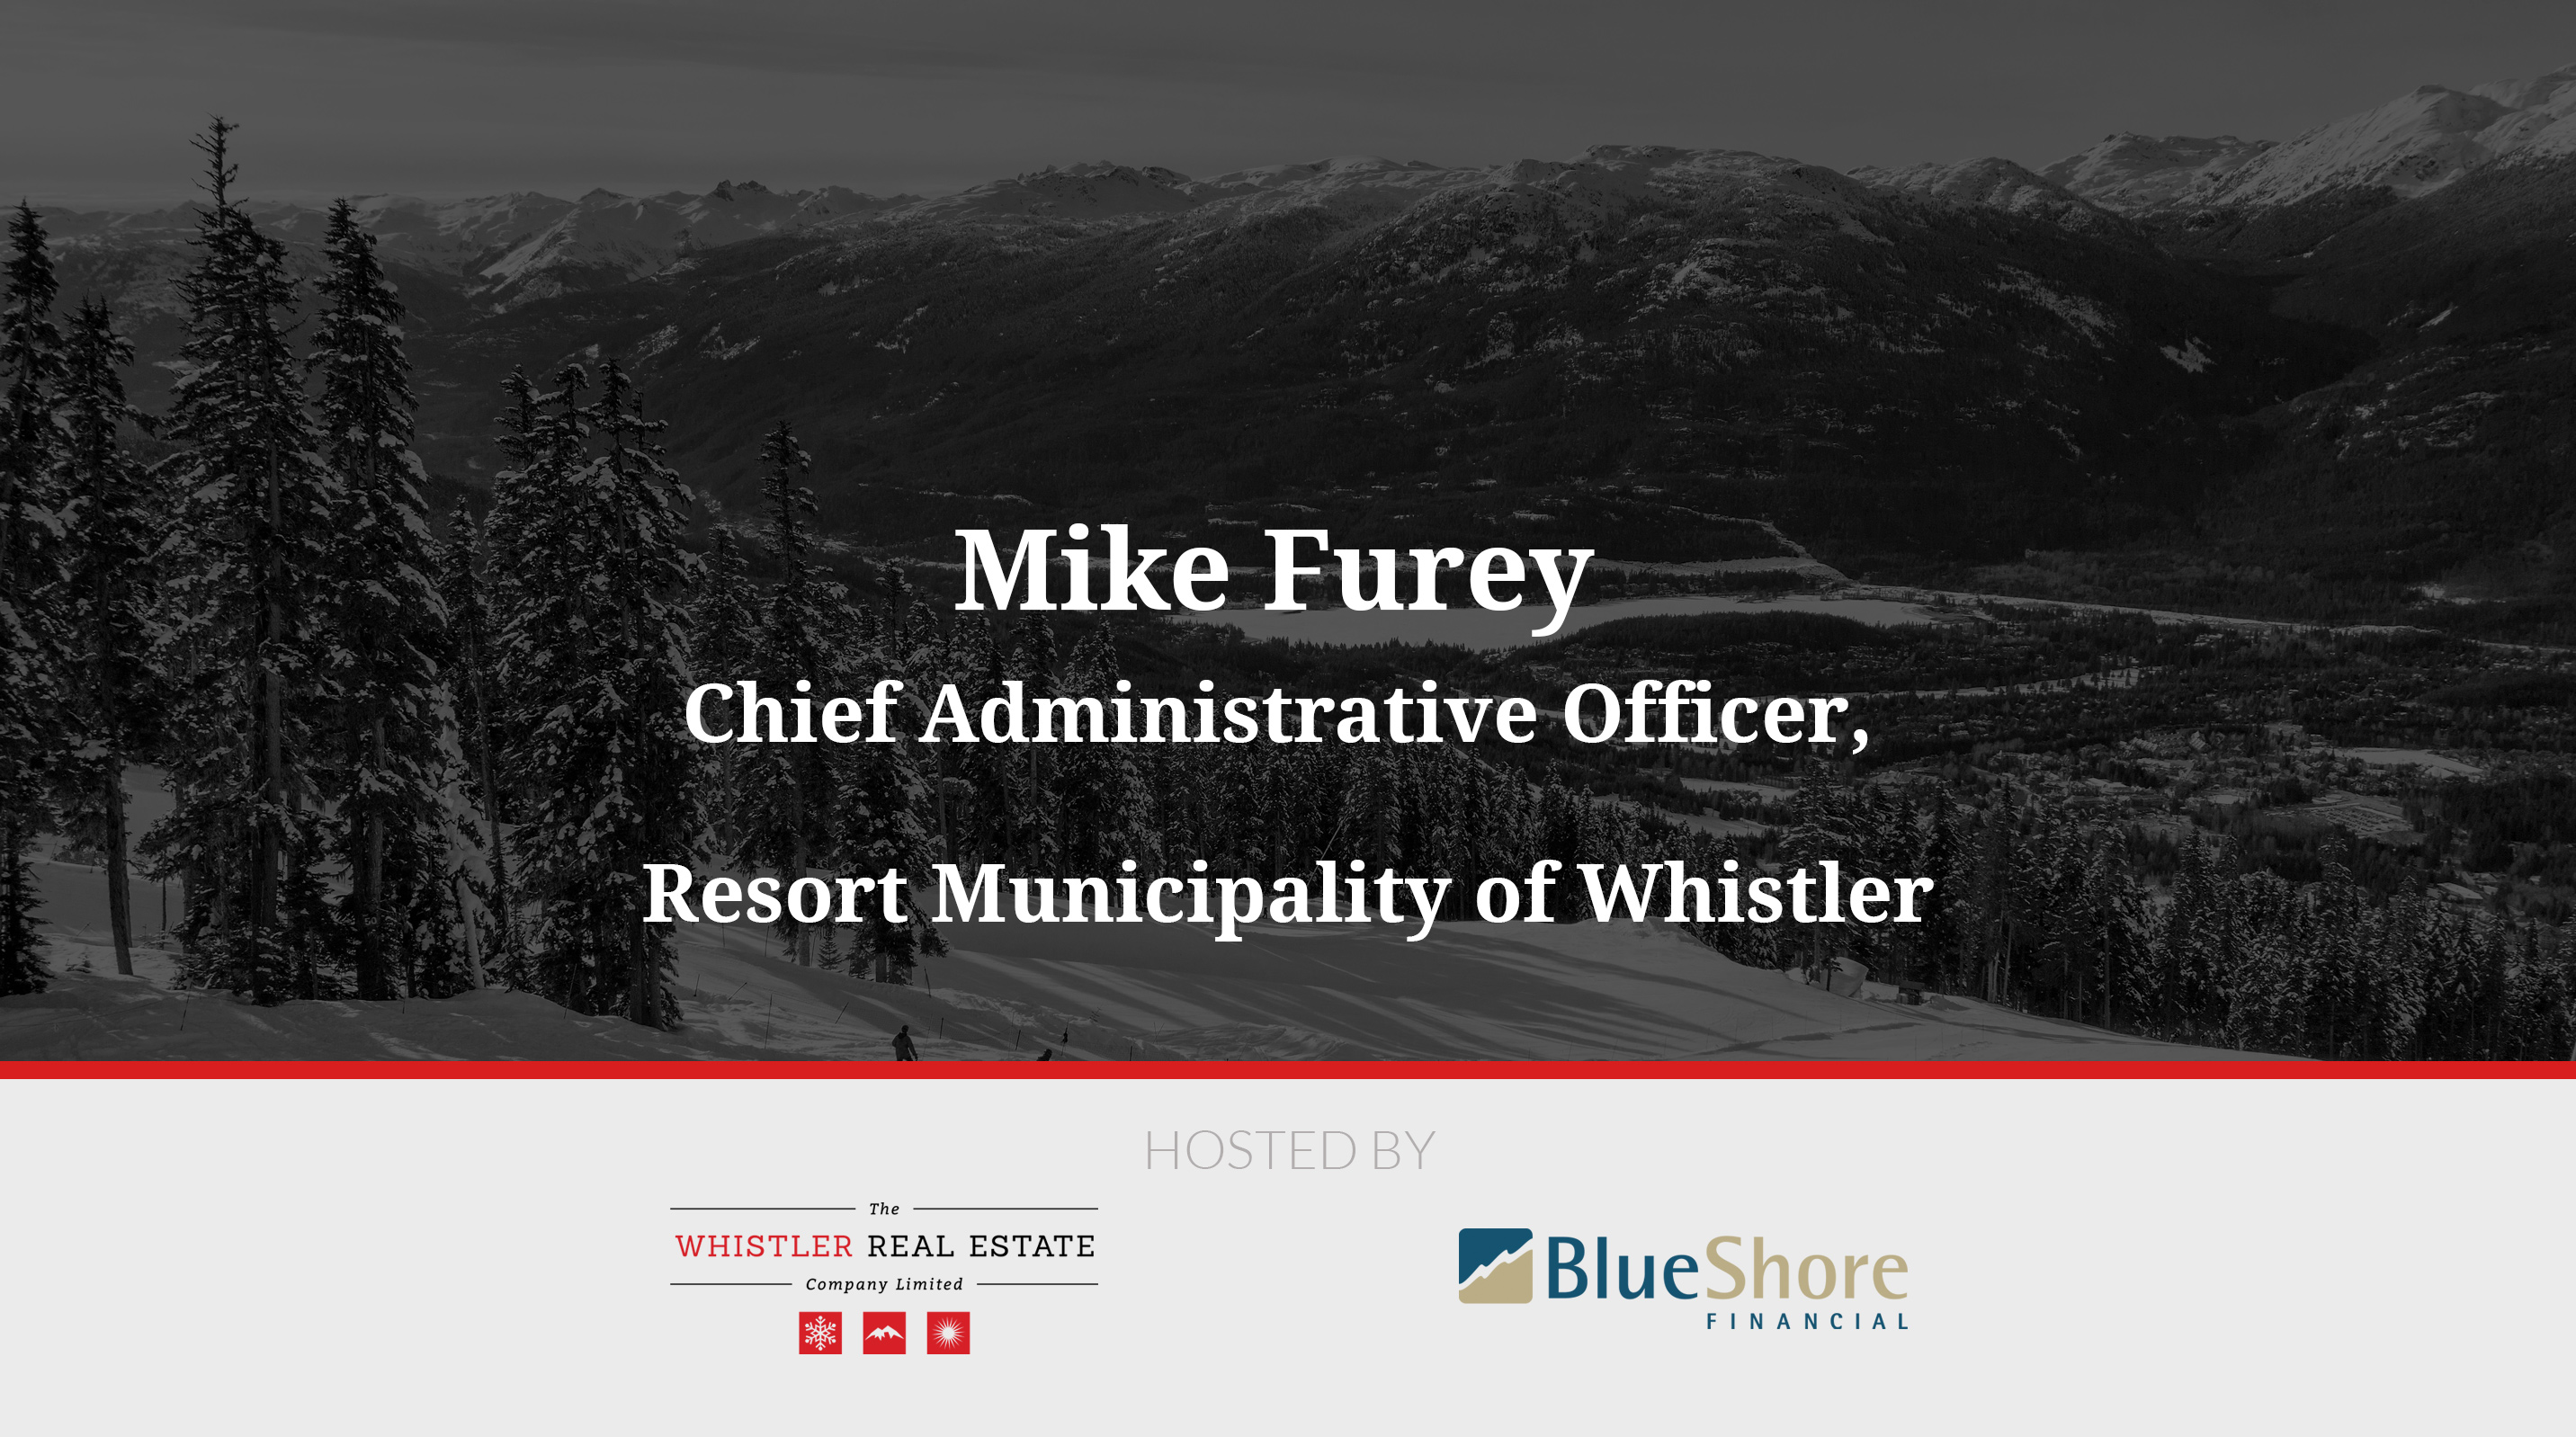 Mike Furey, Resort Municipality of Whistler